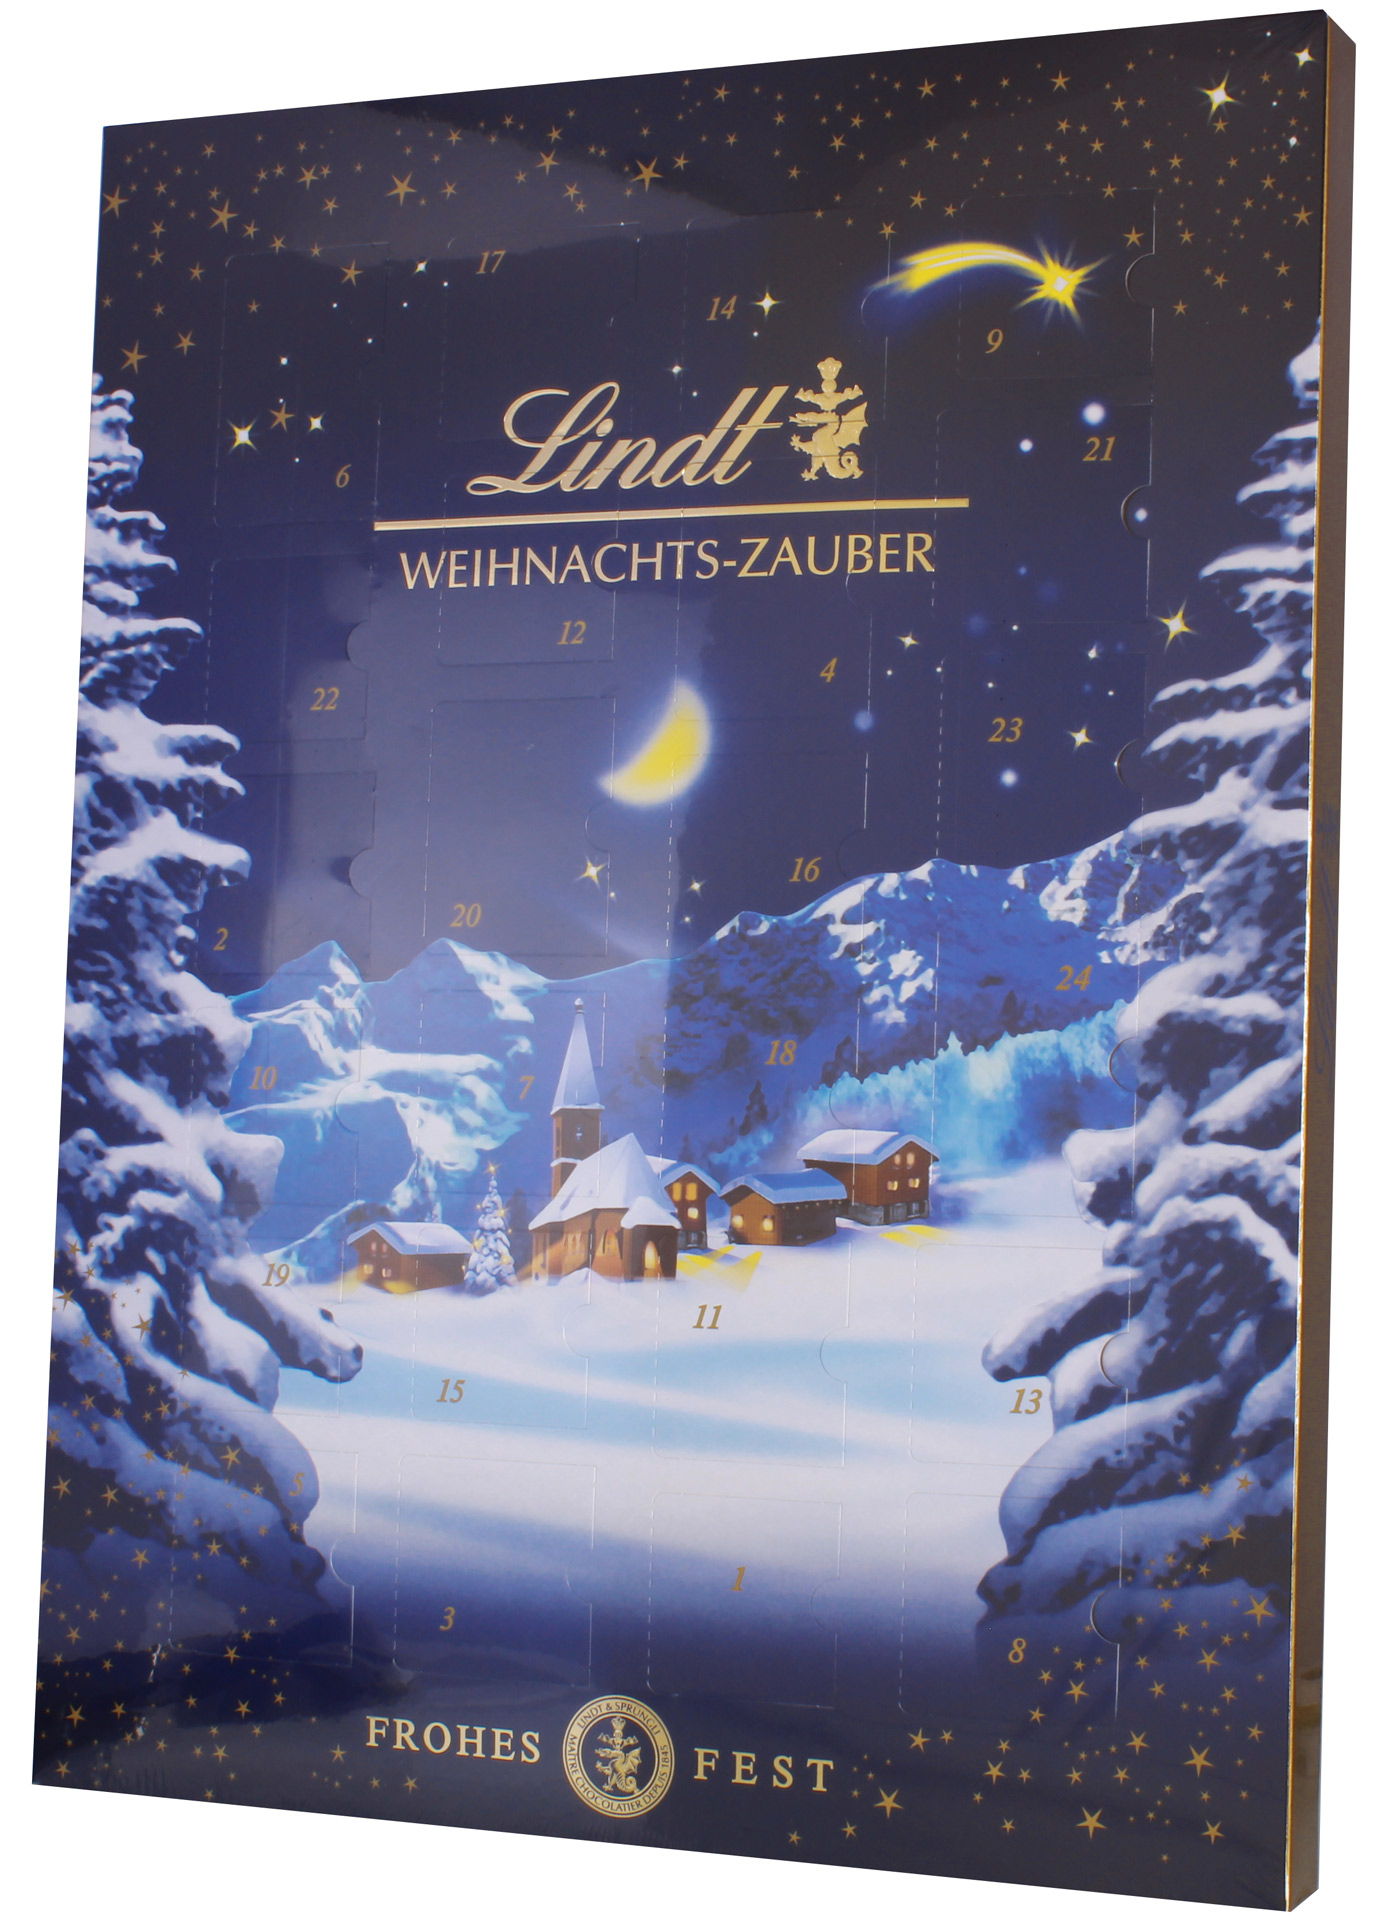 lindt weihnachtszauber adventskalender minis schokolade 265g online kaufen bei lieferello. Black Bedroom Furniture Sets. Home Design Ideas